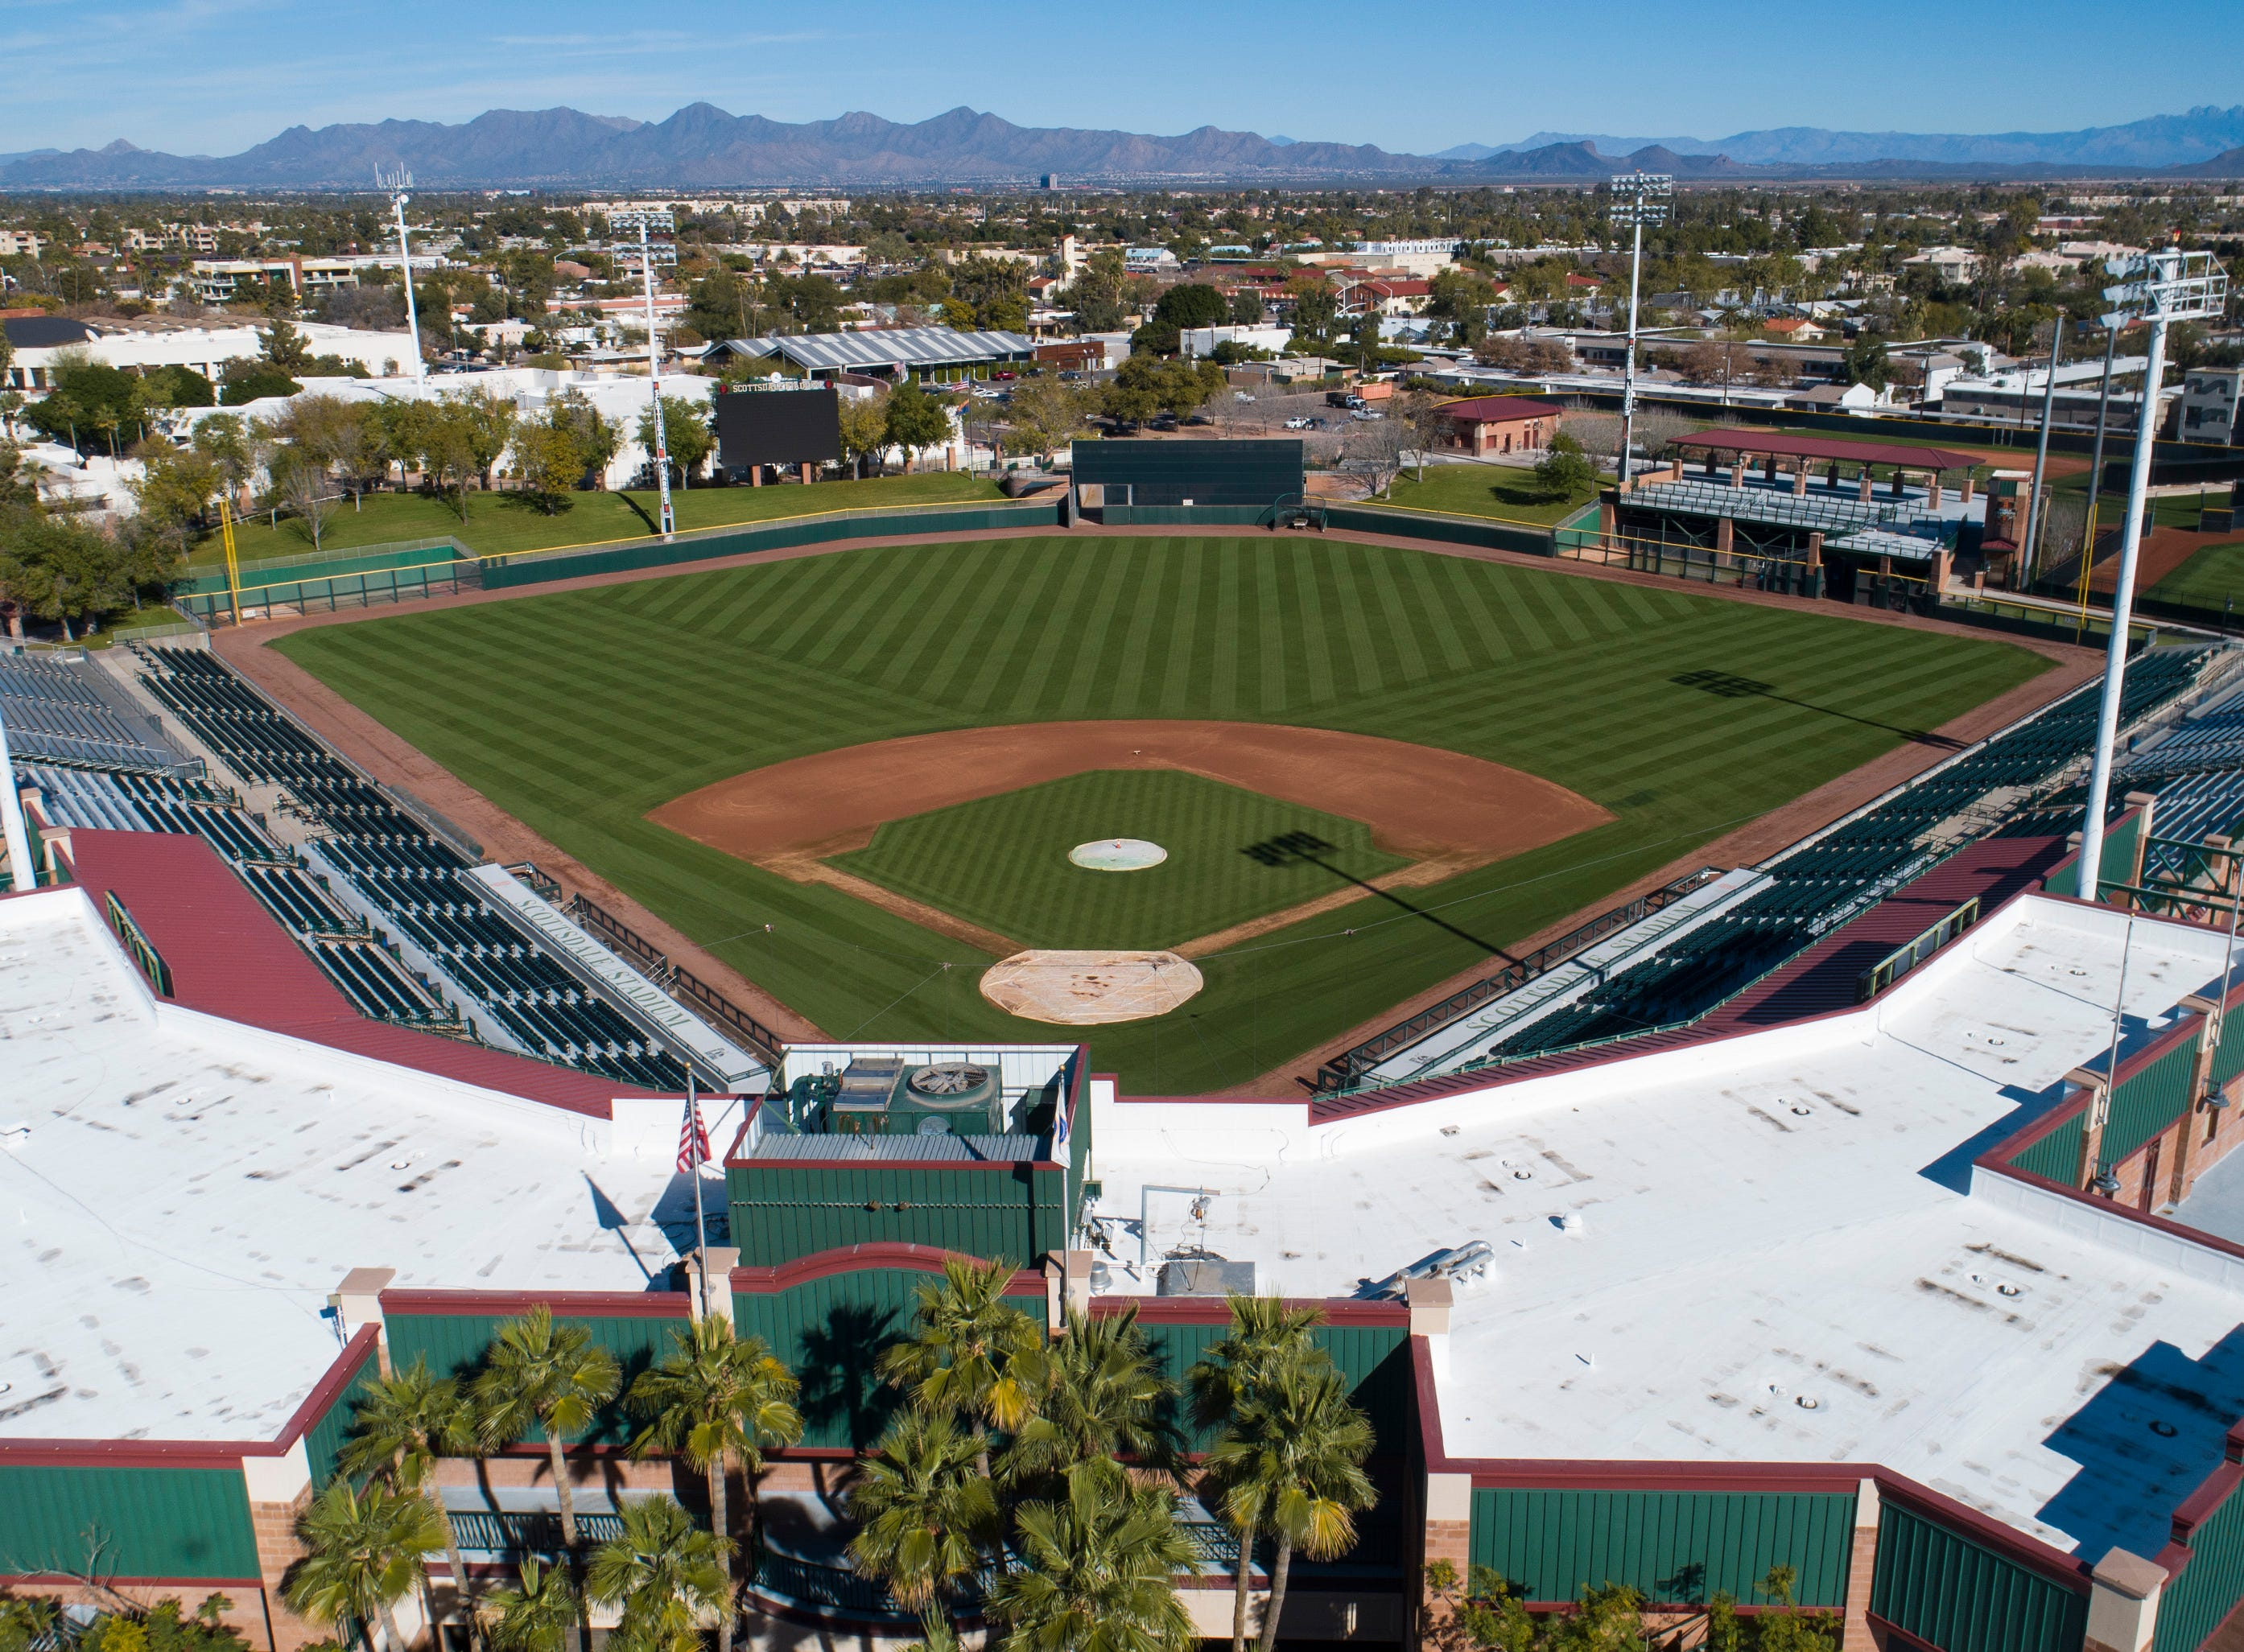 Aerial drone view of Scottsdale Stadium, Cactus League home of the San Francisco Giants, in Scottsdale, Arizona January 8, 2019.